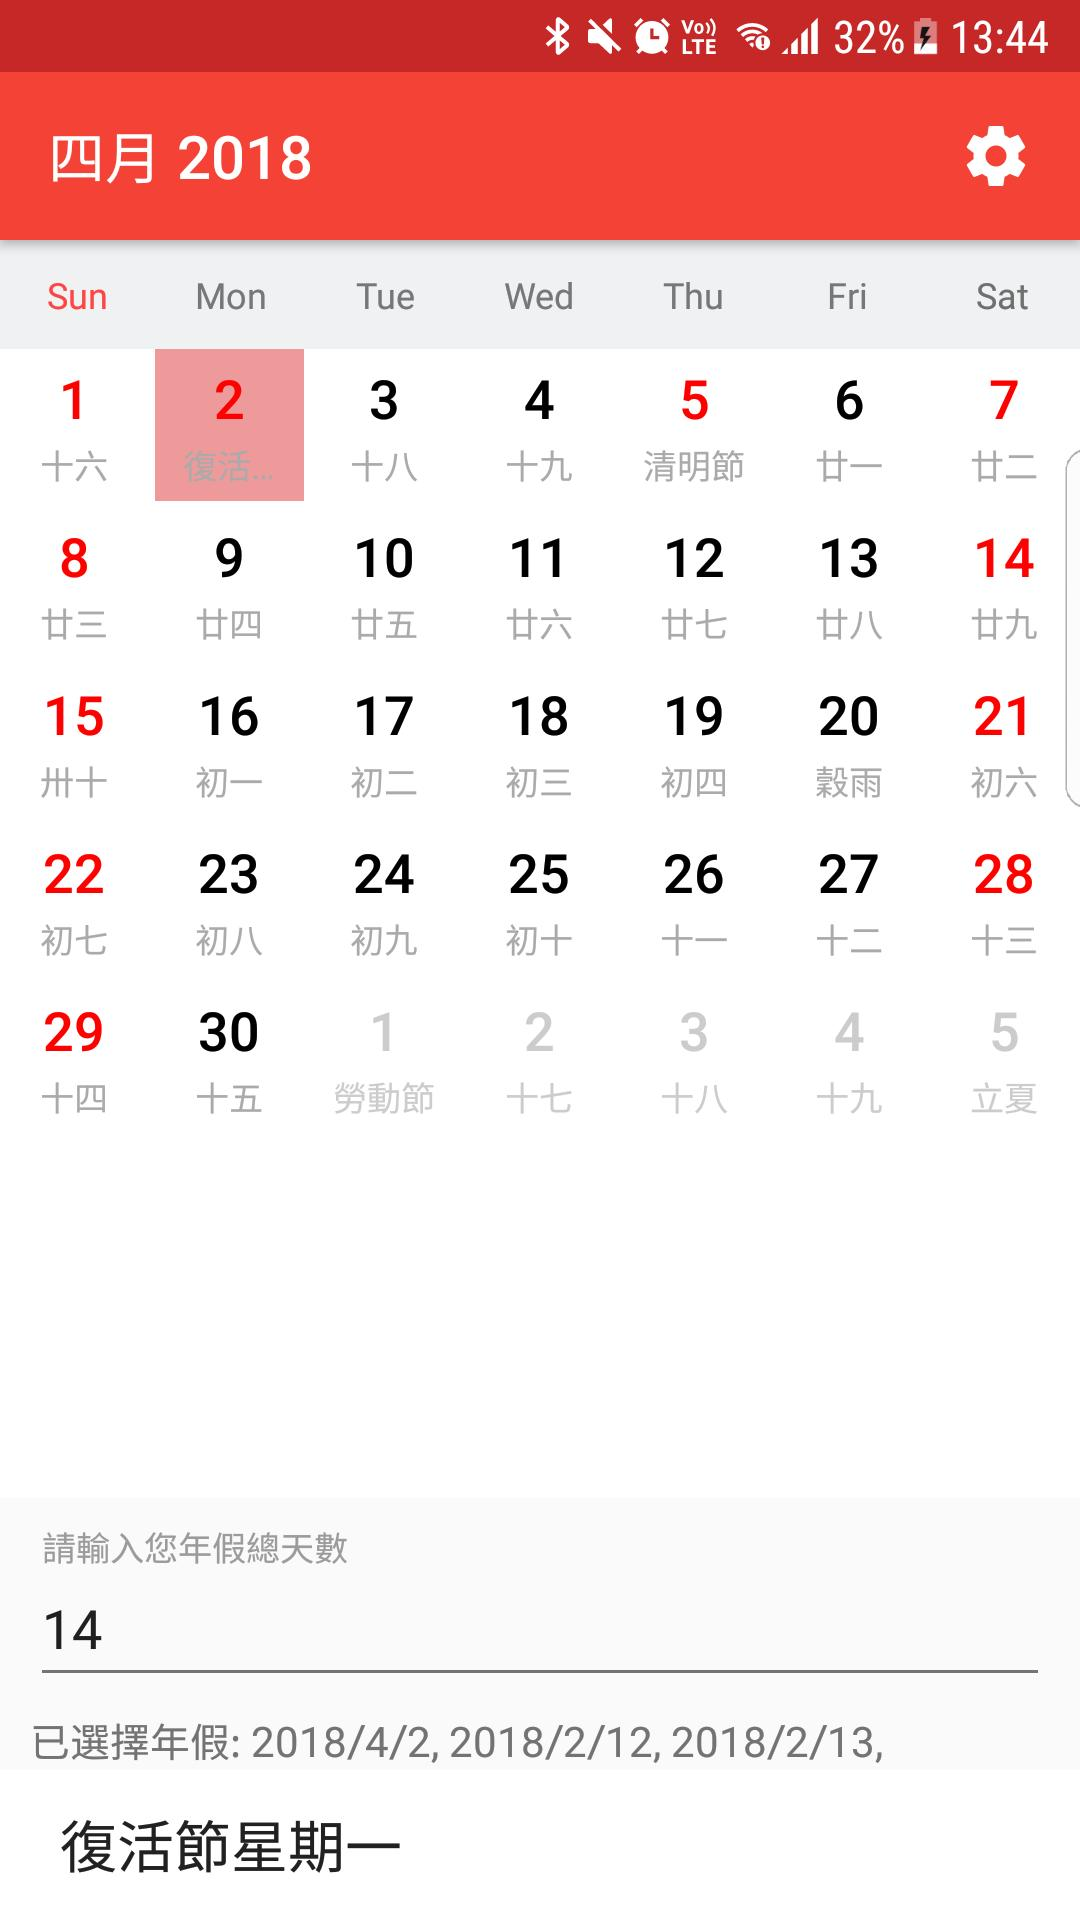 HK public holidays 2020 for Android - APK Download